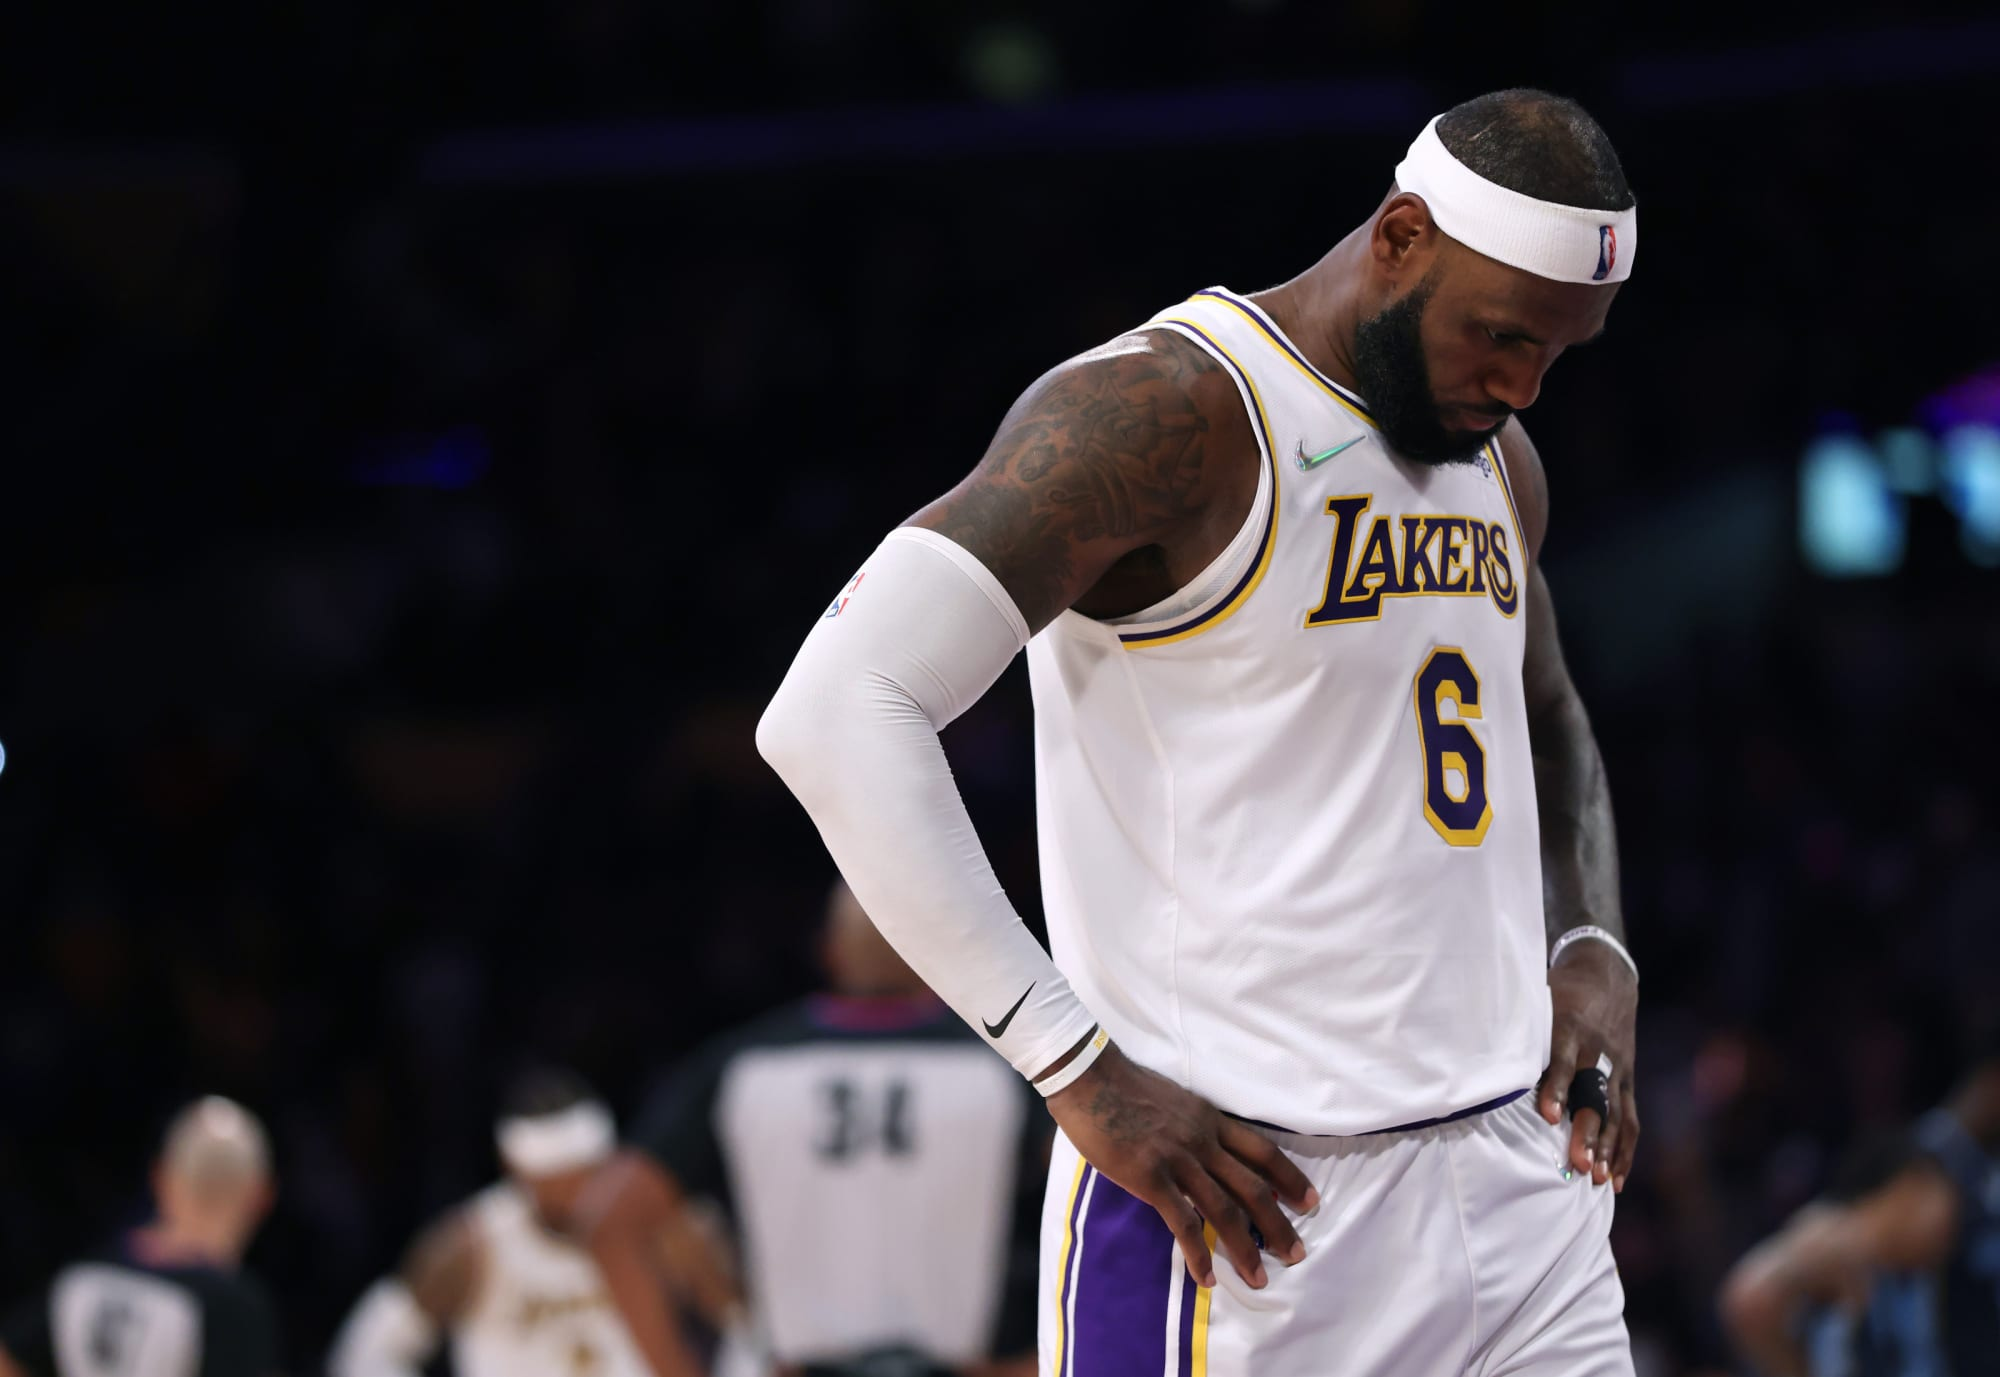 LeBron James was 'shaking his head inside' playing against son's former teammate